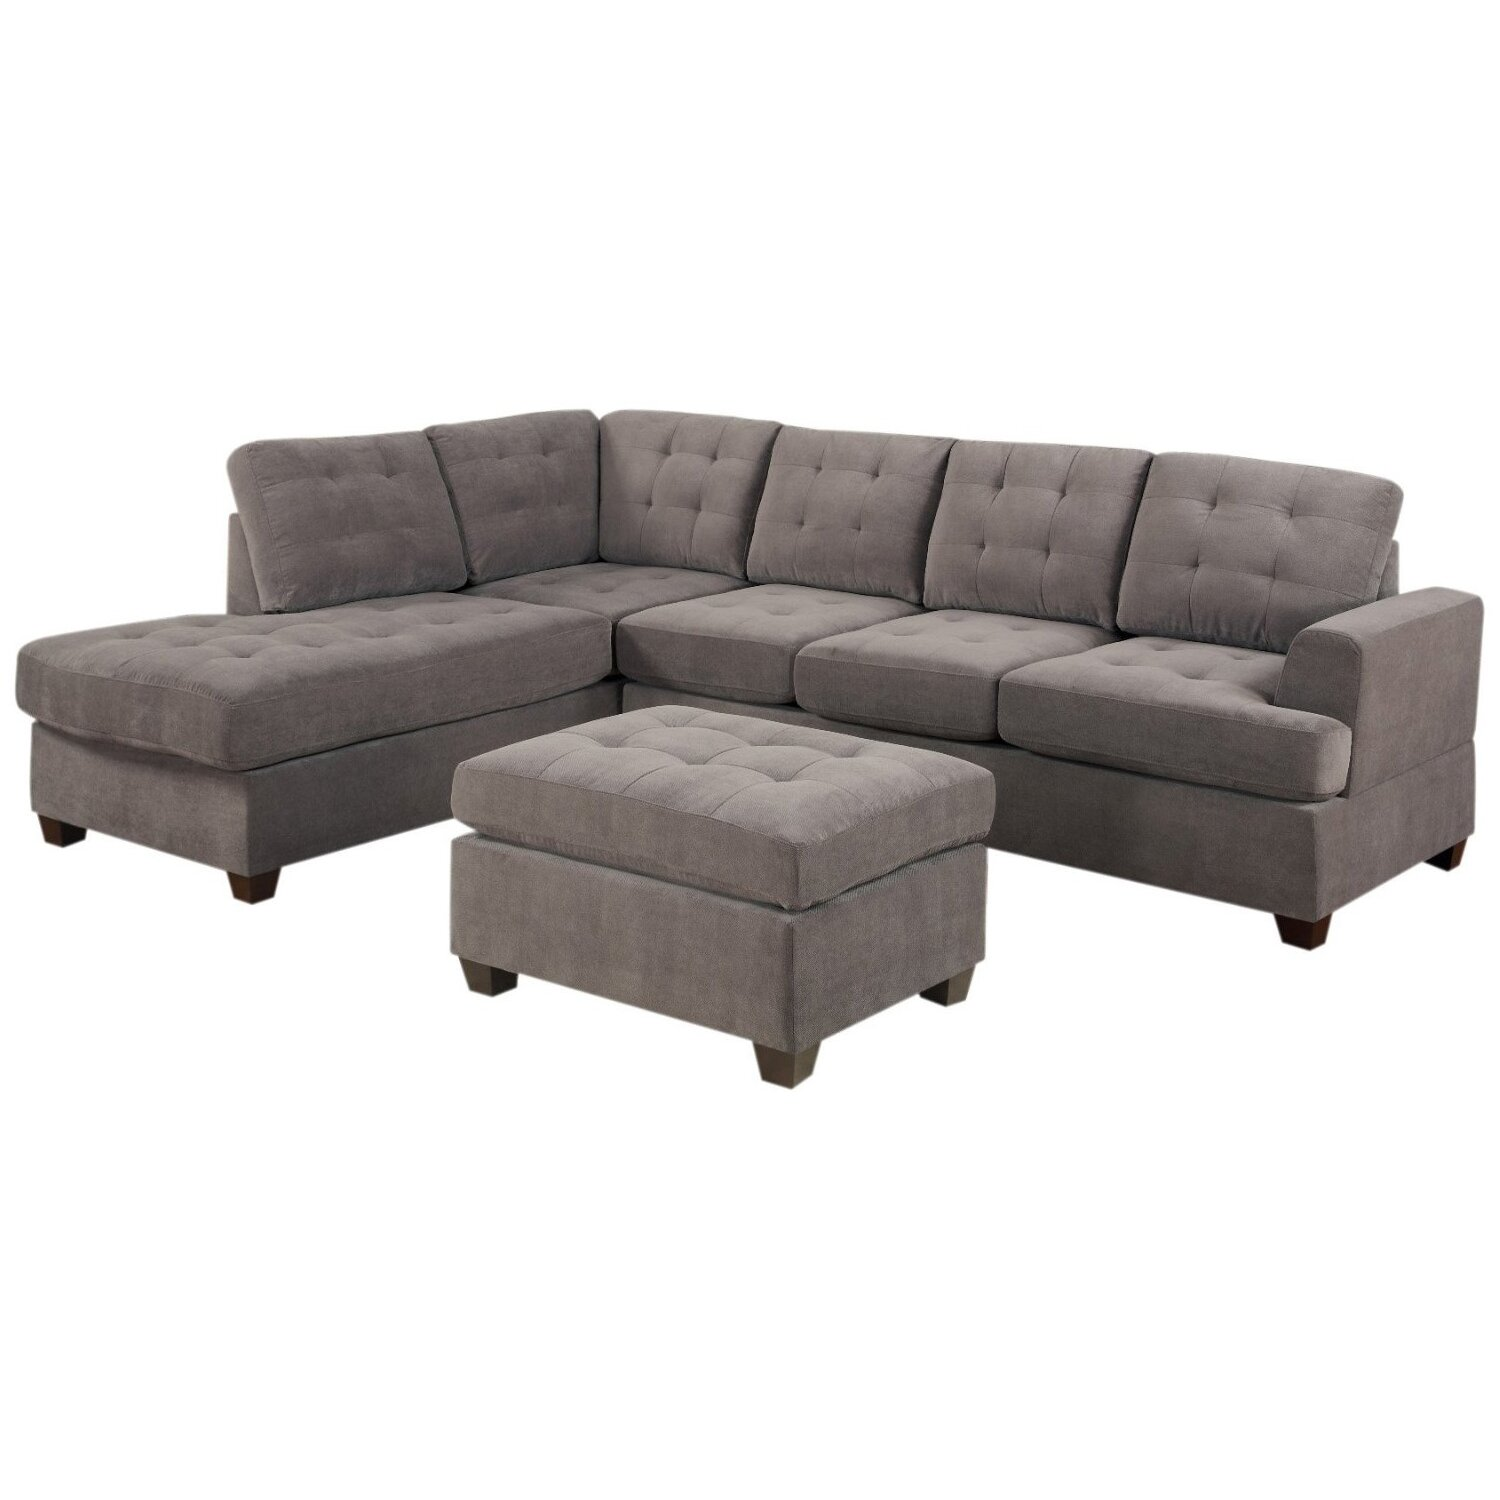 Red Barrel Studio Old Rock Reversible Chaise Sectional  : Red Barrel Studio25C225AE Old Rock Reversible Chaise Sectional from www.wayfair.ca size 1500 x 1500 jpeg 180kB